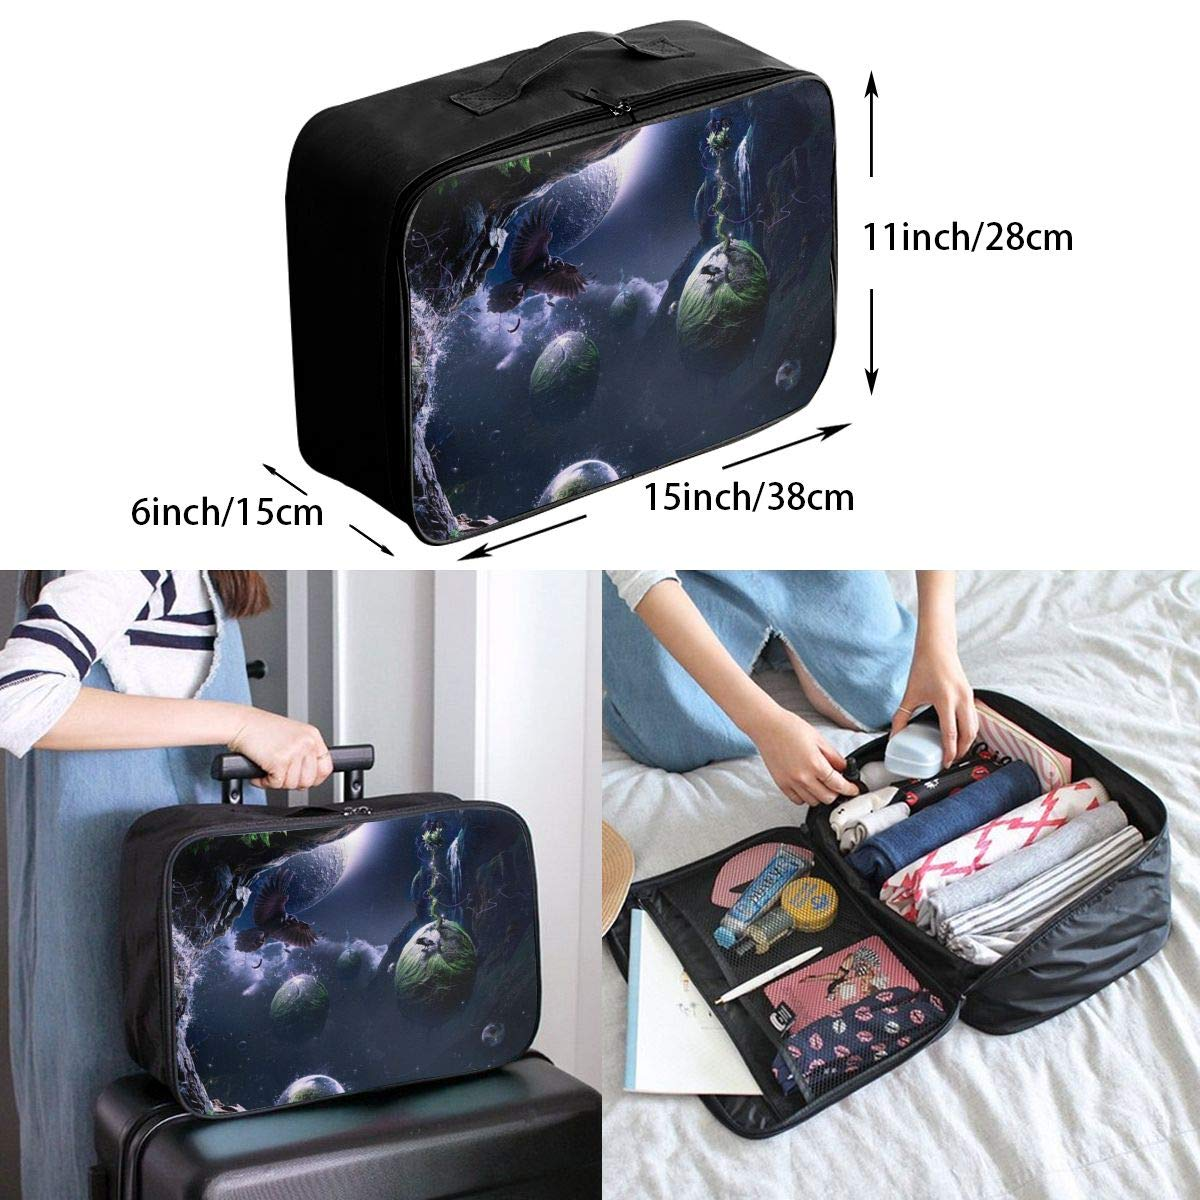 Travel Luggage Duffle Bag Lightweight Portable Handbag Fantasy Birds Large Capacity Waterproof Foldable Storage Tote